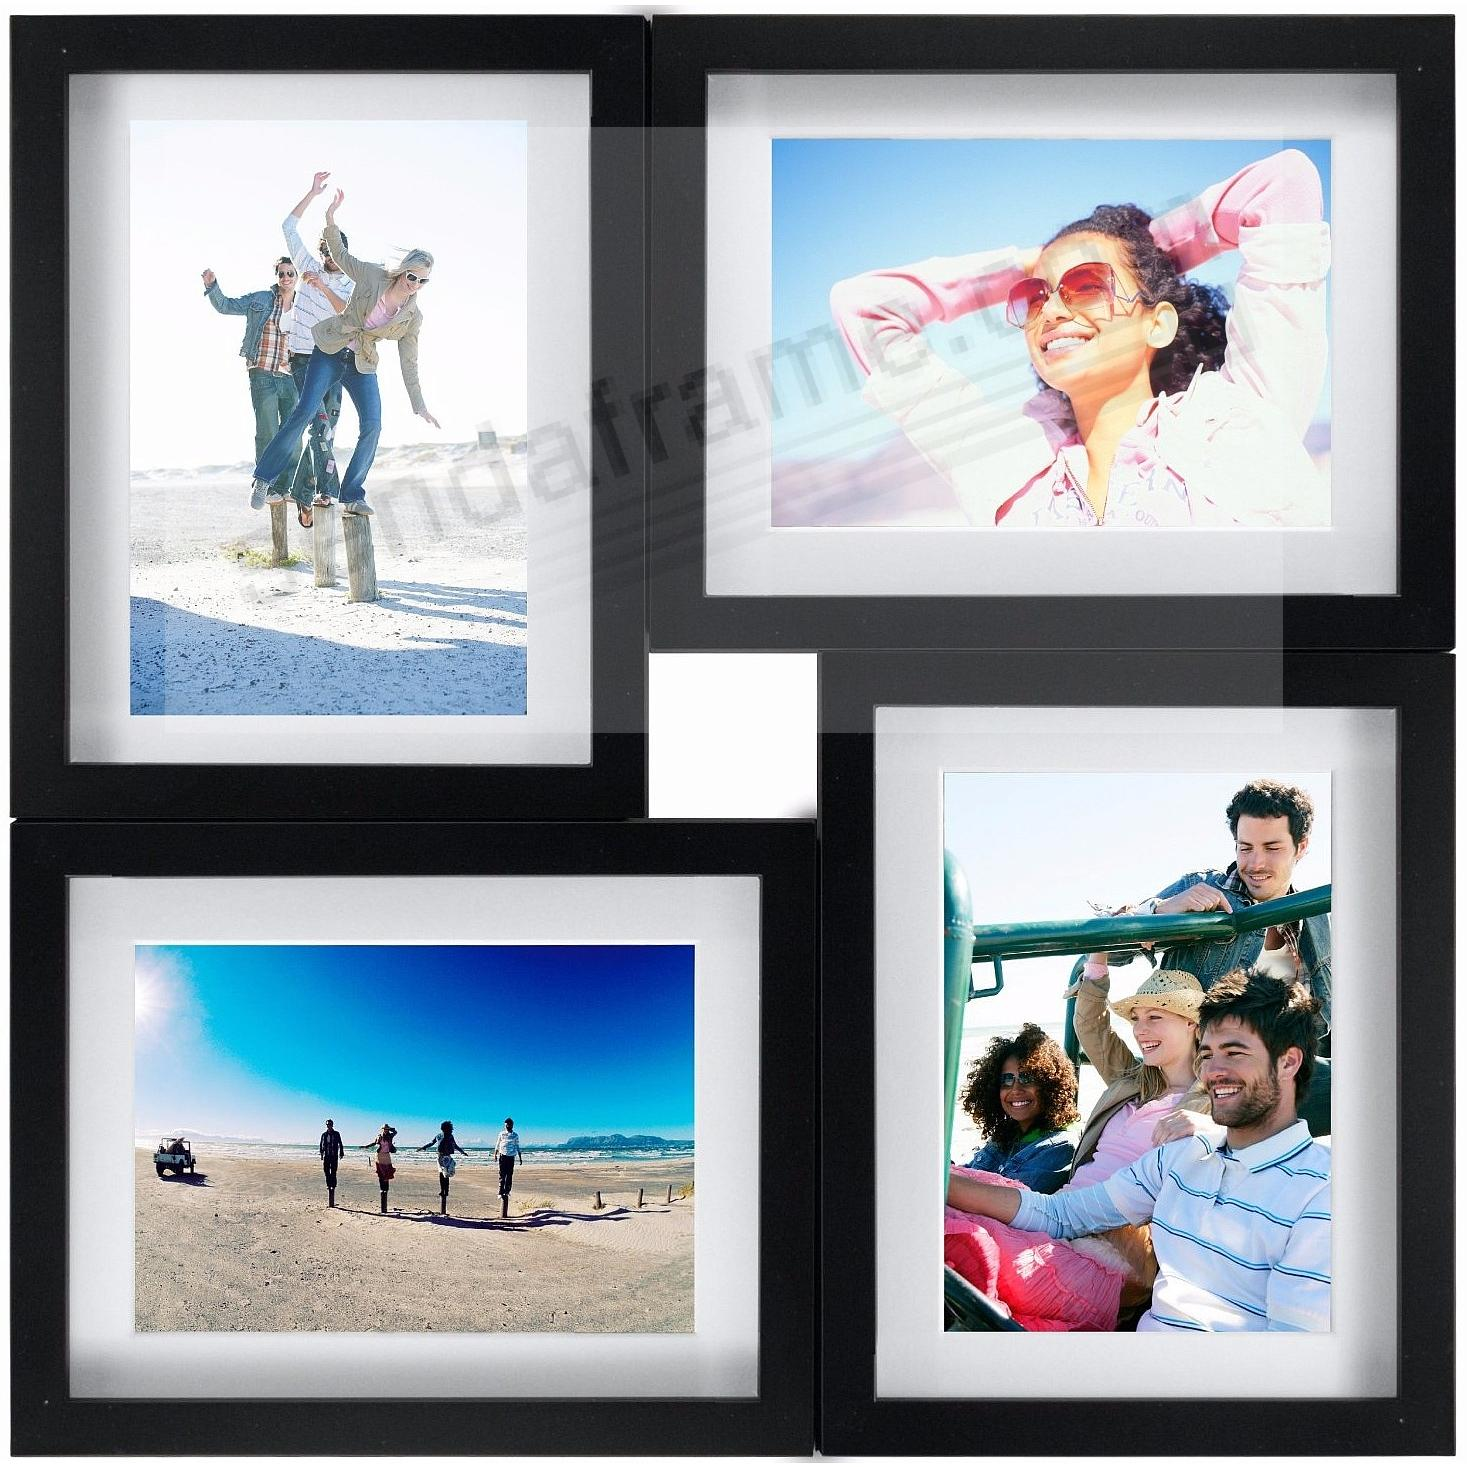 Black 4 opening puzzle collage frame for 8x105x7 prints by malden black 4 opening puzzle collage frame for 8x105x7 prints by malden jeuxipadfo Choice Image